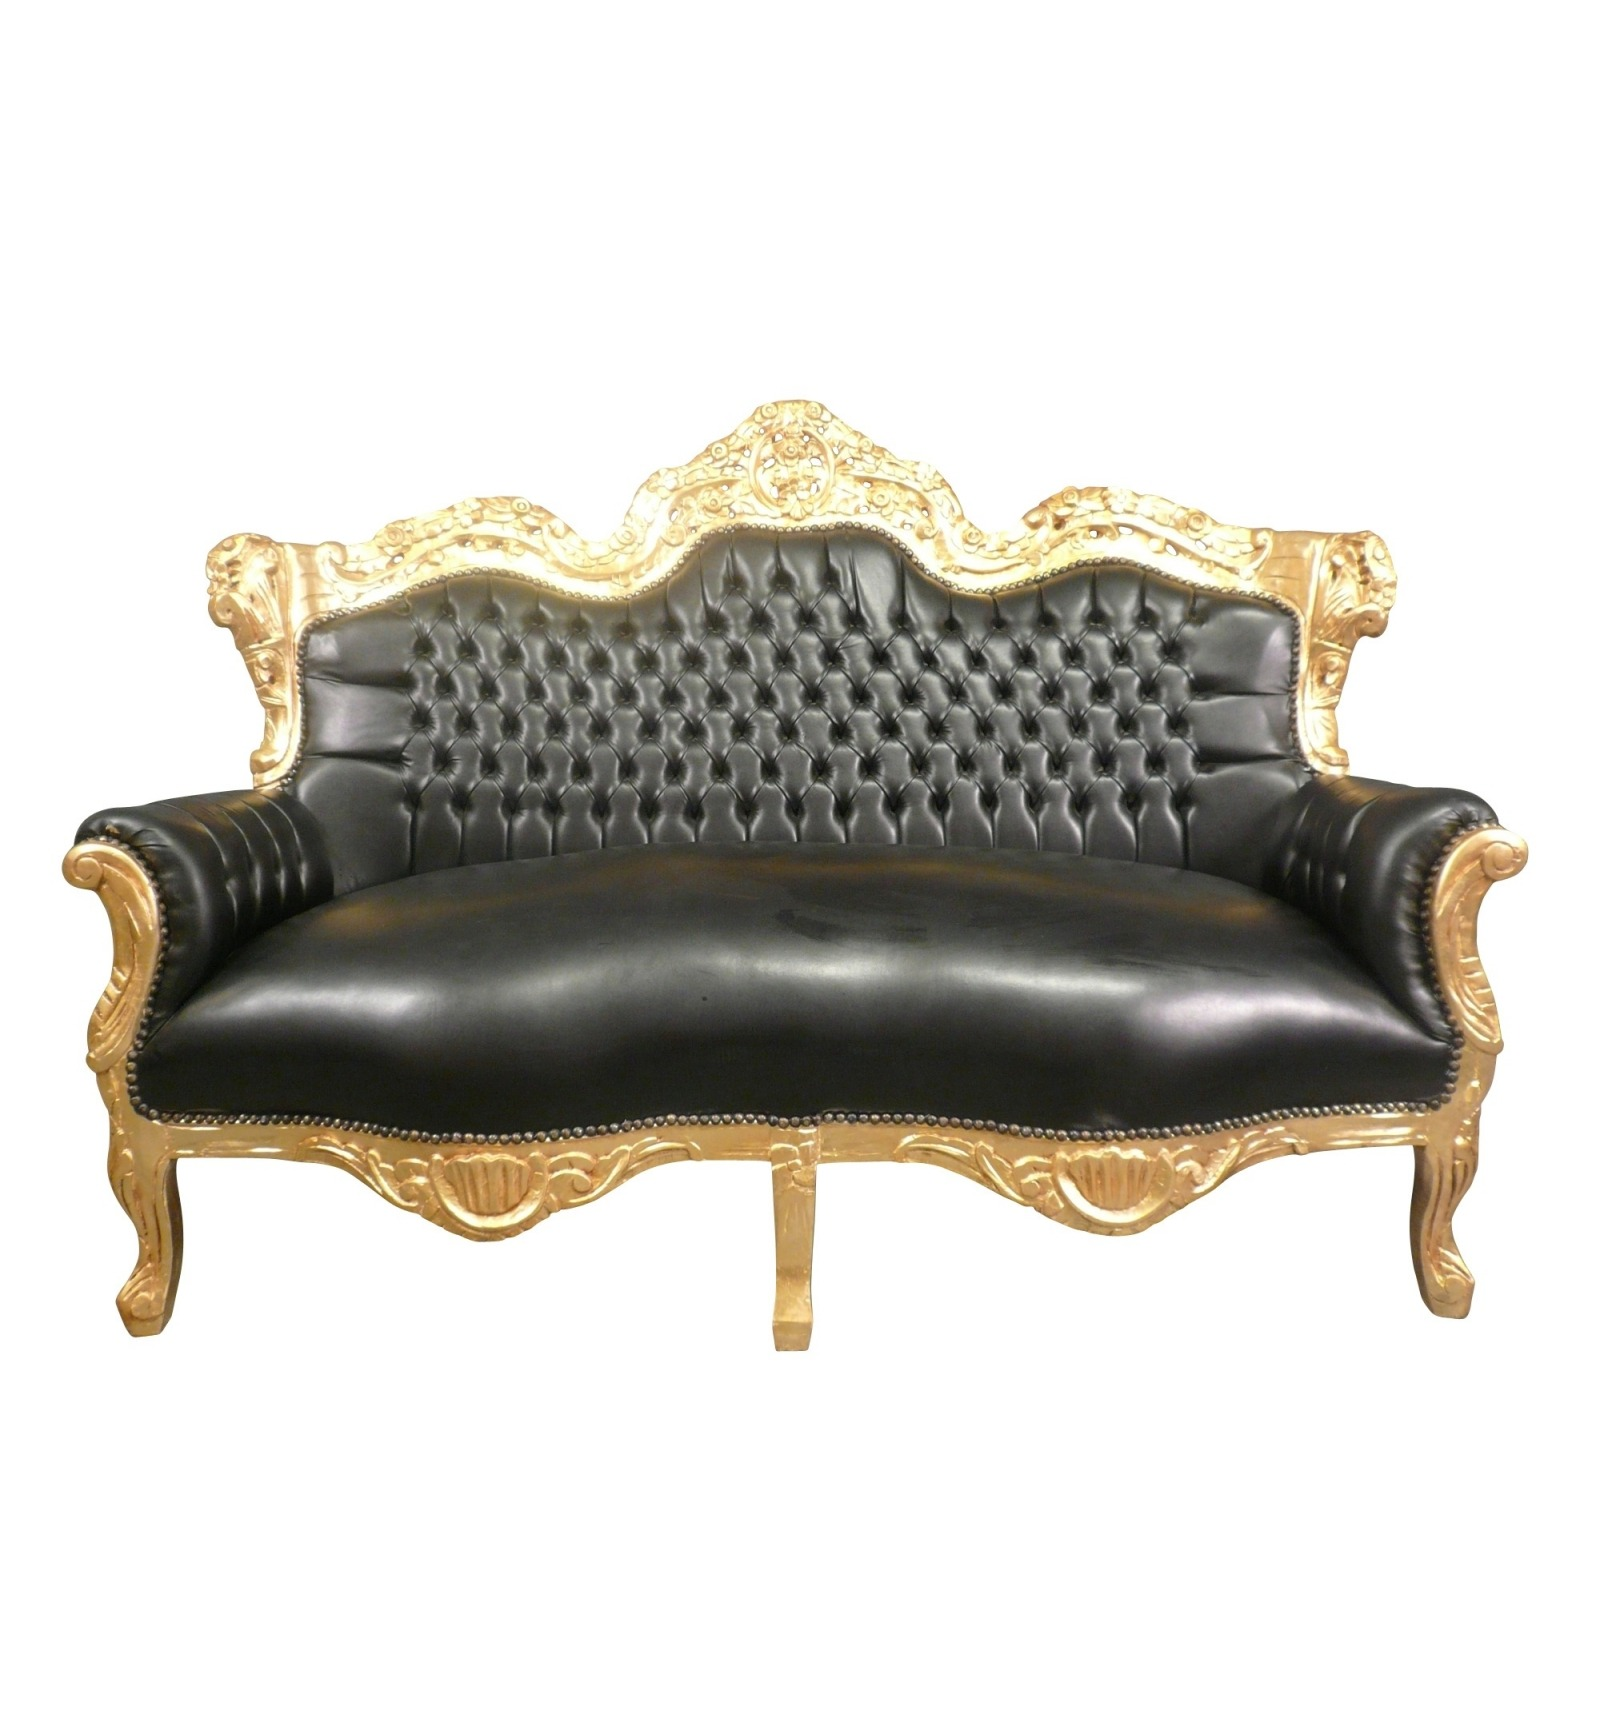 Miraculous Baroque Black Gold Wood Sofa Pabps2019 Chair Design Images Pabps2019Com